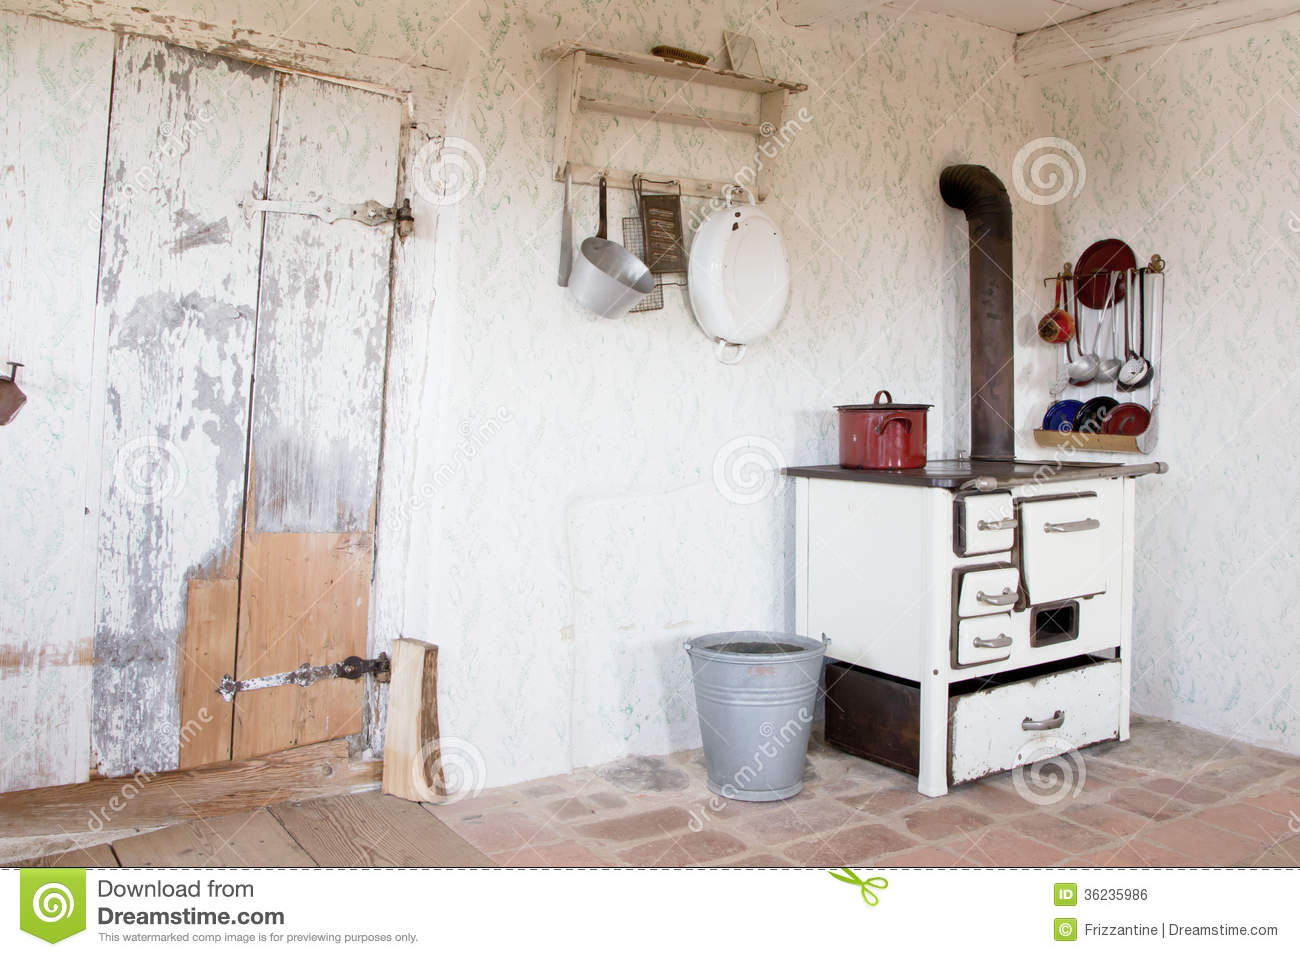 Old vintage kitchen at that time stock photo royalty for Old country style kitchen